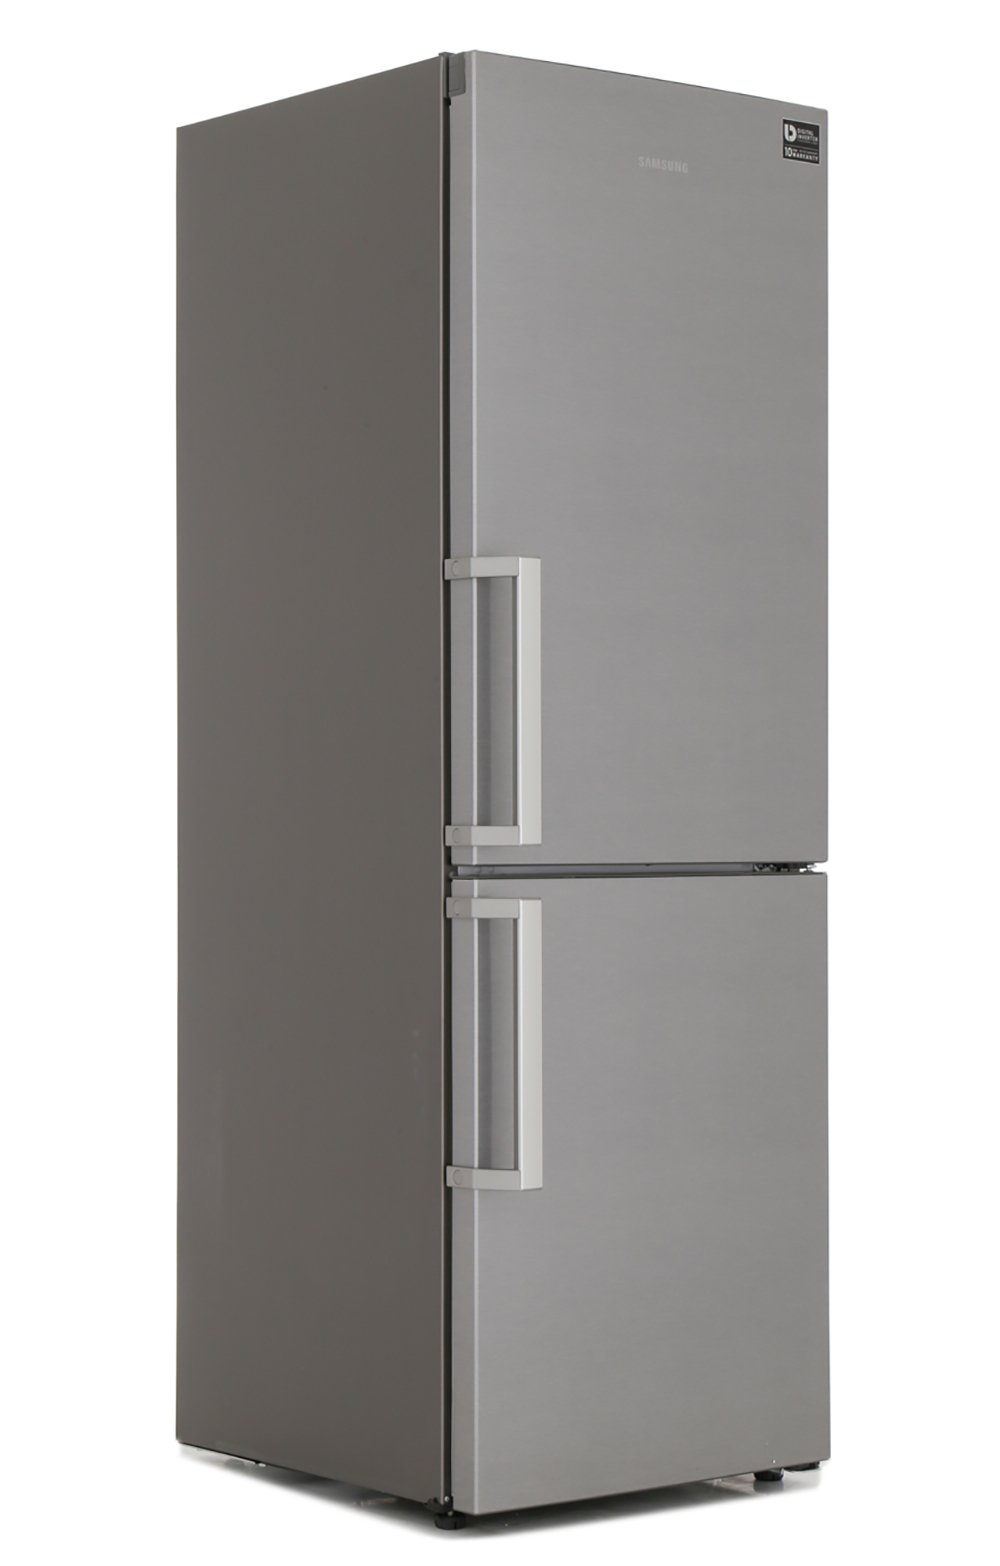 Samsung RB29FSJNDSA1 Frost Free Fridge Freezer